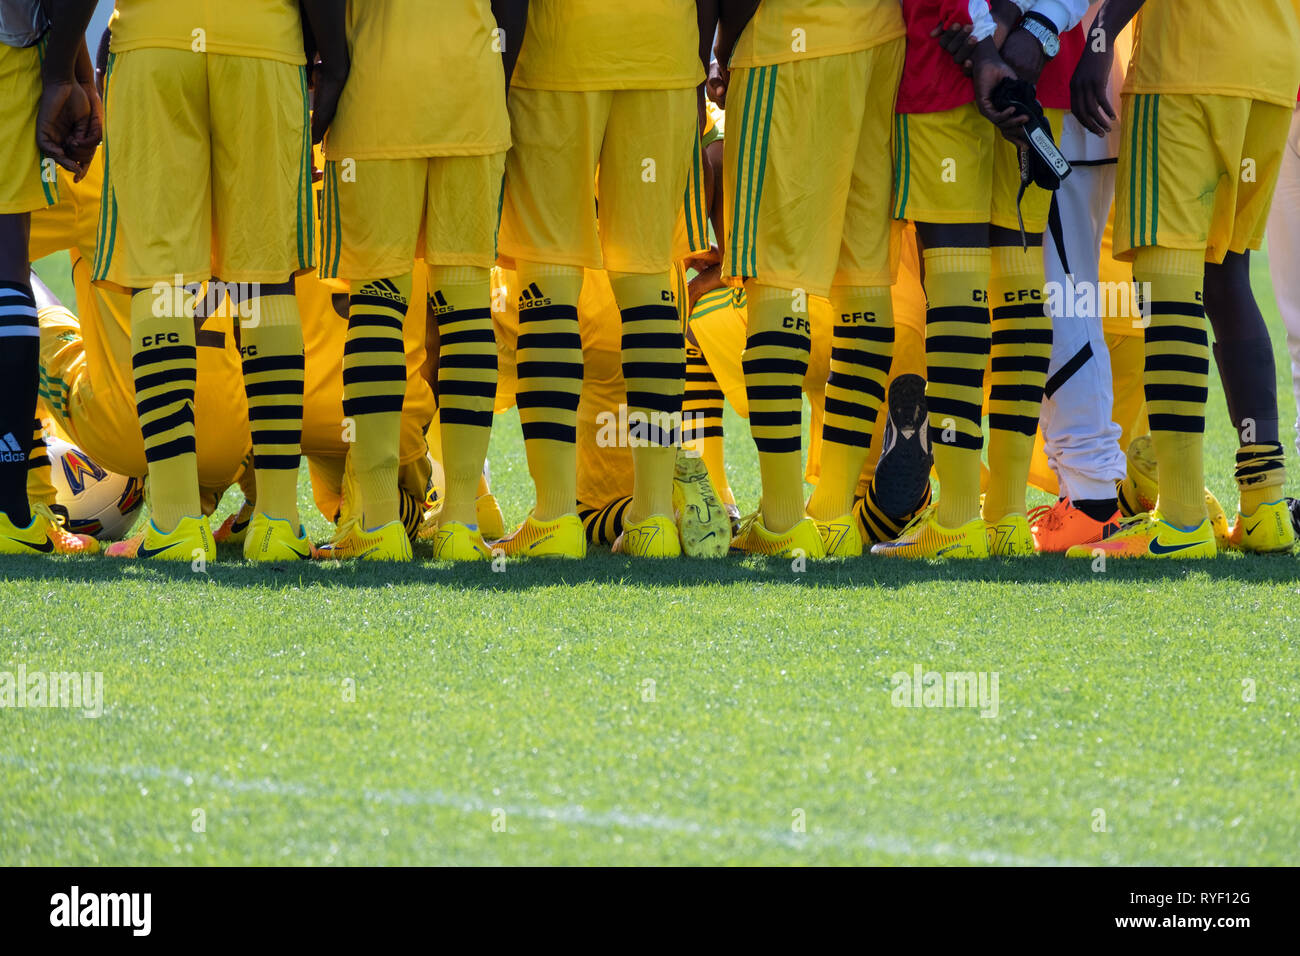 World Games Special Olympics 2019 Abu Dhabi: Yellow socks of Ghana Sepcial Olympics Football Team - Stock Image